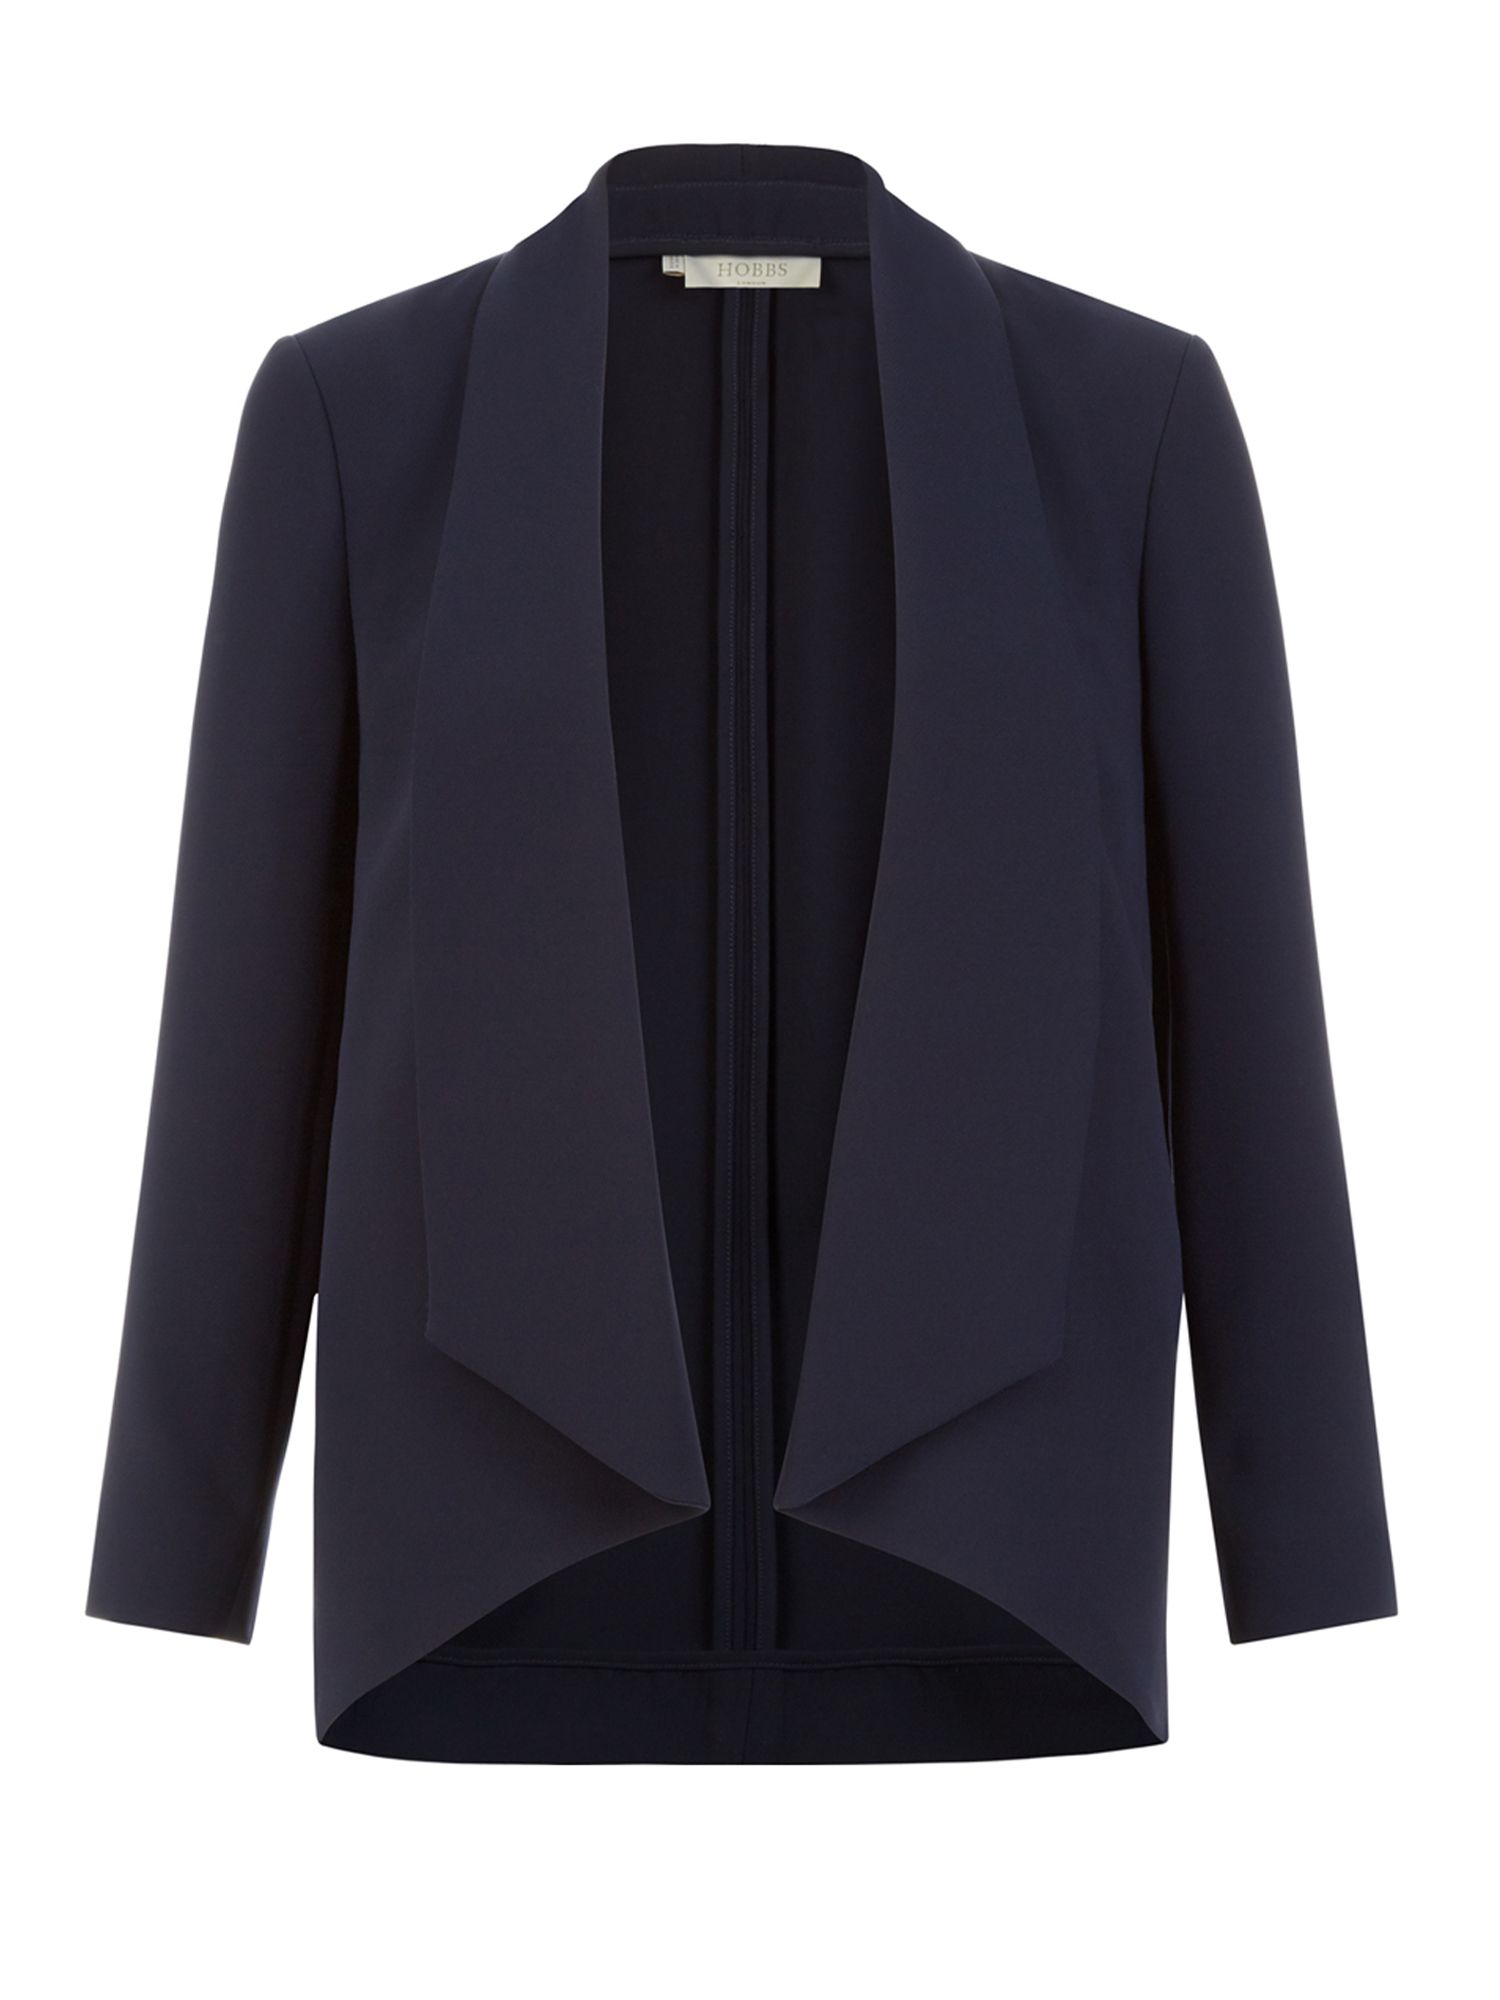 Hobbs Tess Jacket, Blue